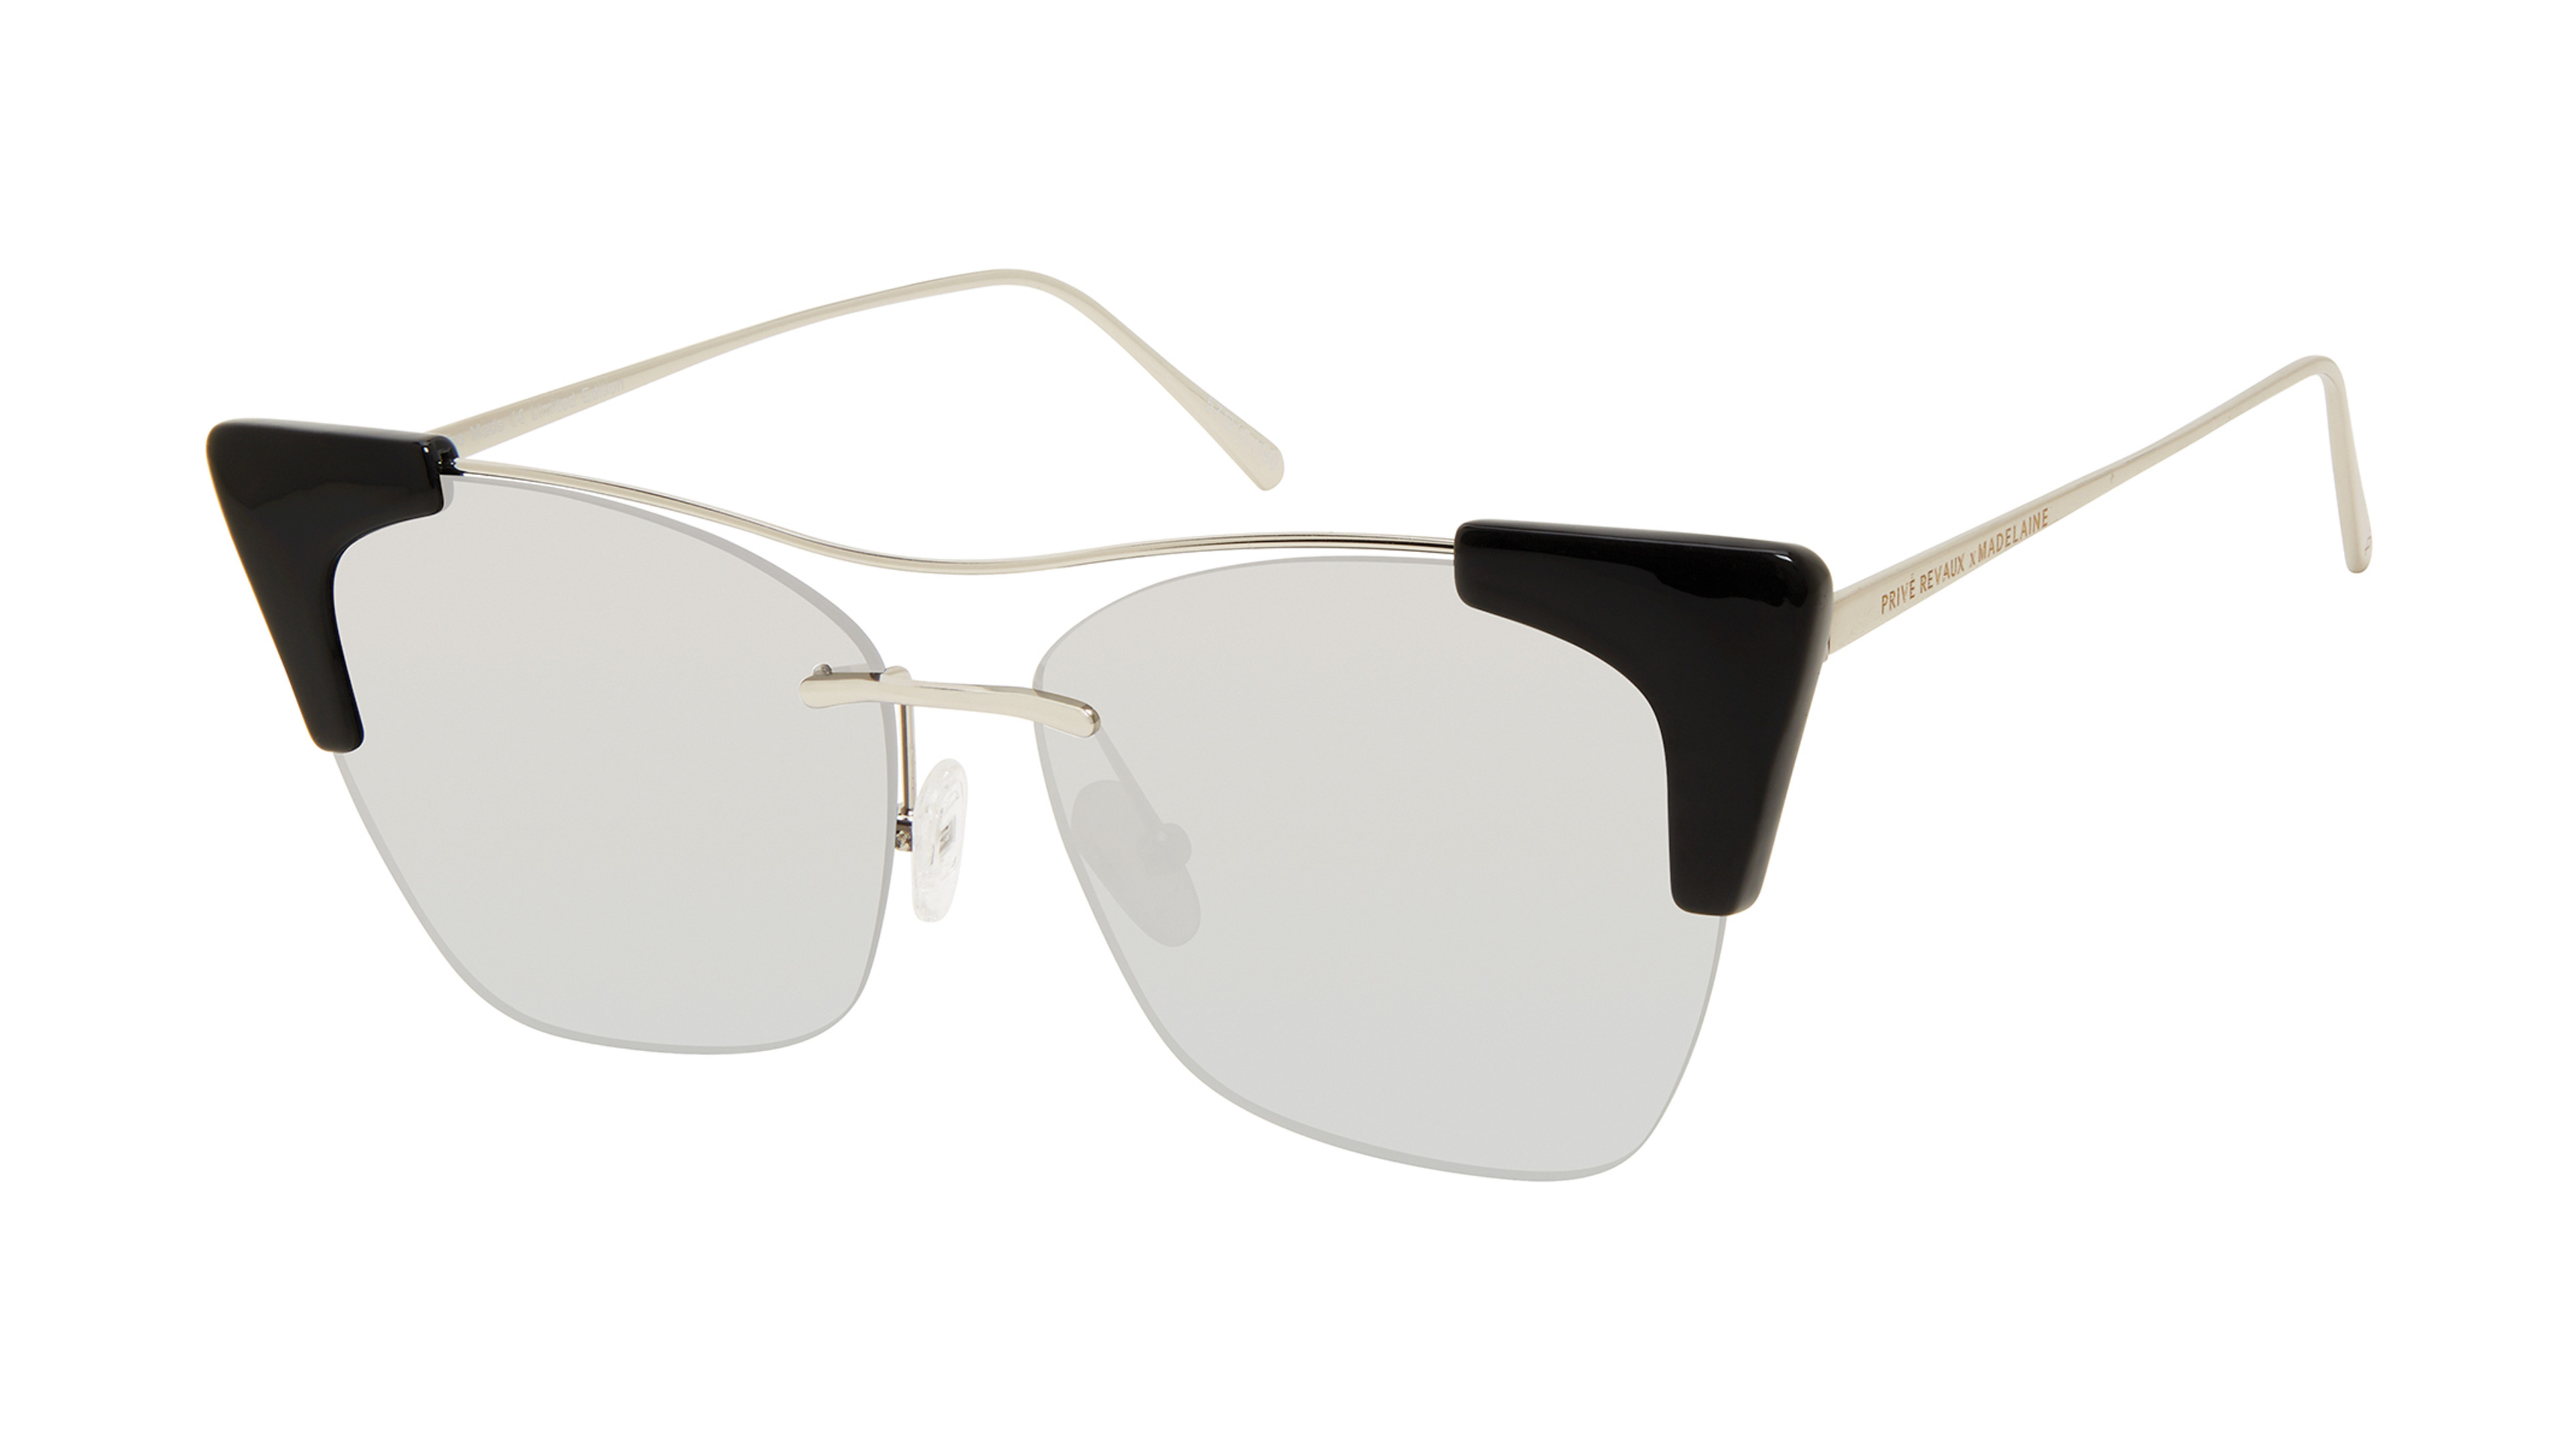 0818893024122-angle-prive-revaux-sonnenbrille-prive-revaux-the-mads-black